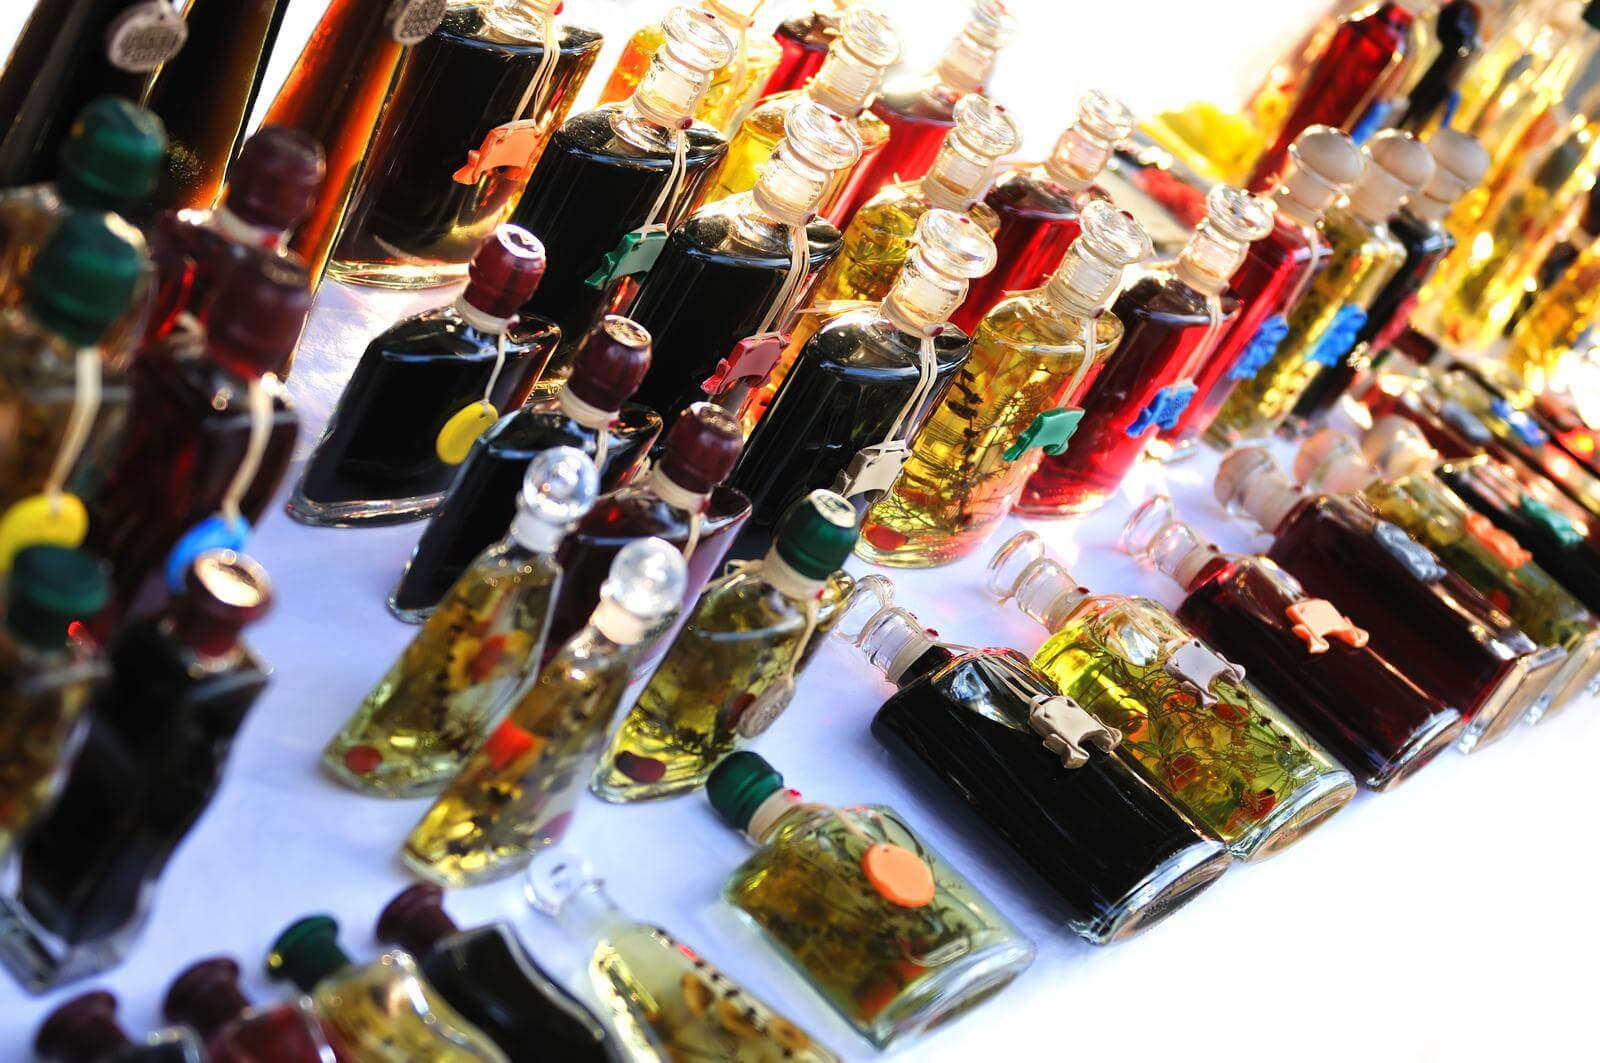 The Best Herbs for Infusing Oil to Treat Candida Yeast